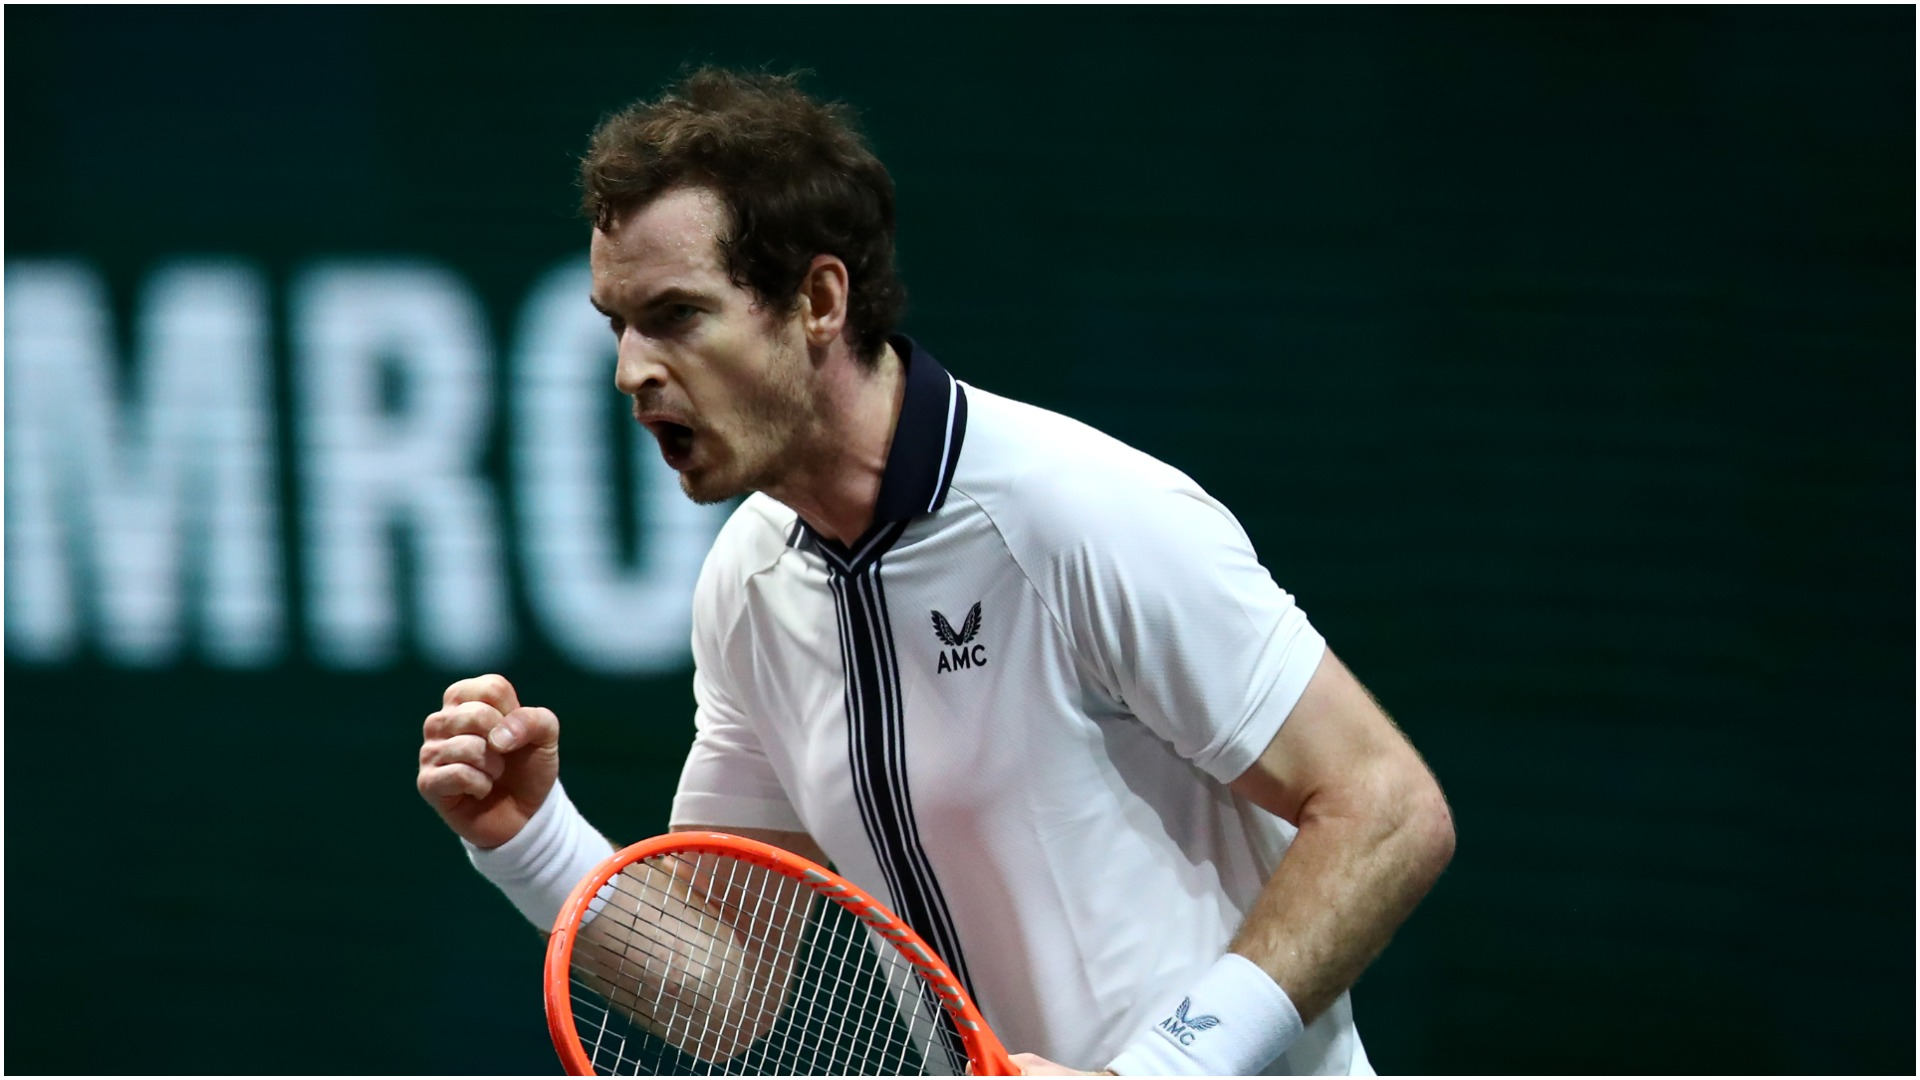 Murray comes from behind to beat Haase in Rotterdam